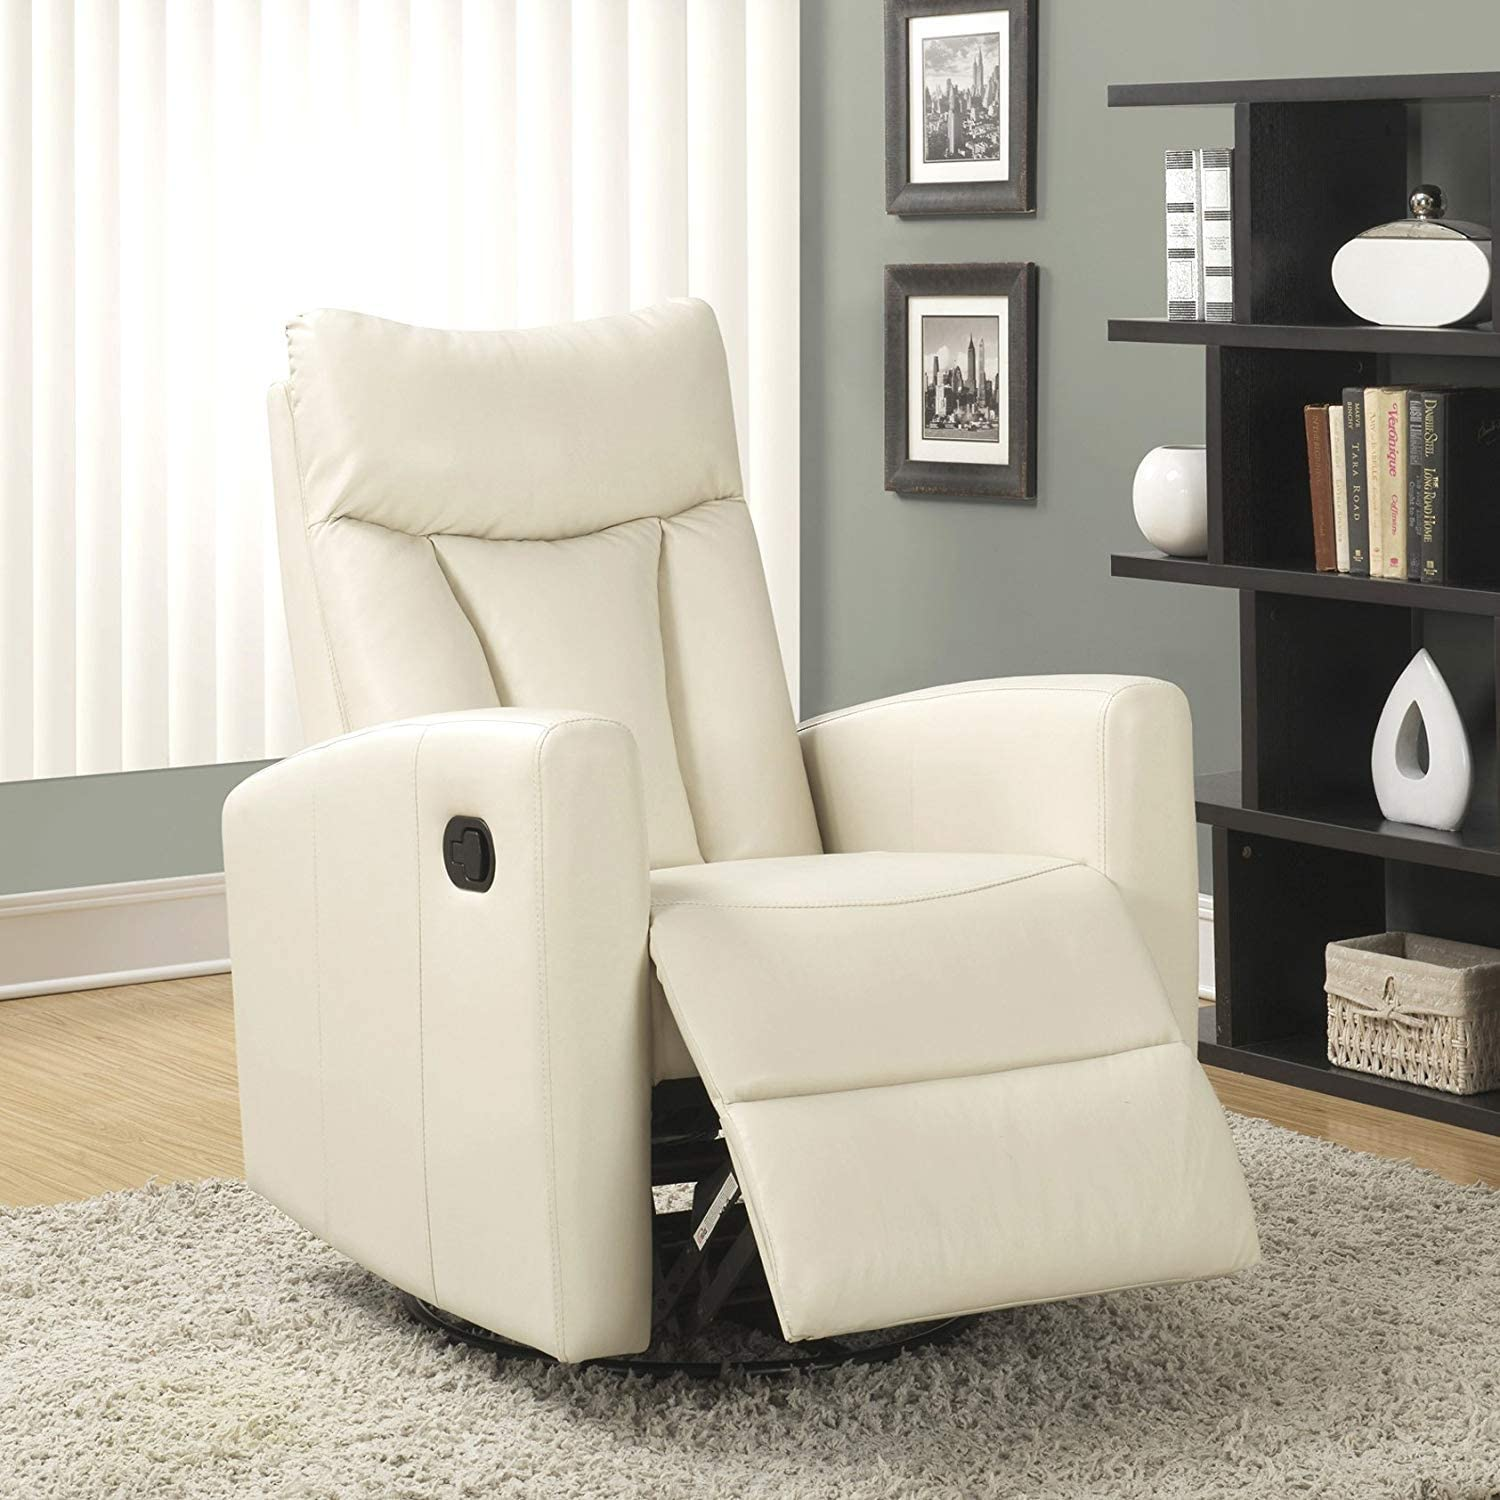 Monarch Specialties white Recliner chair, 30 L x 30 W x 41 H